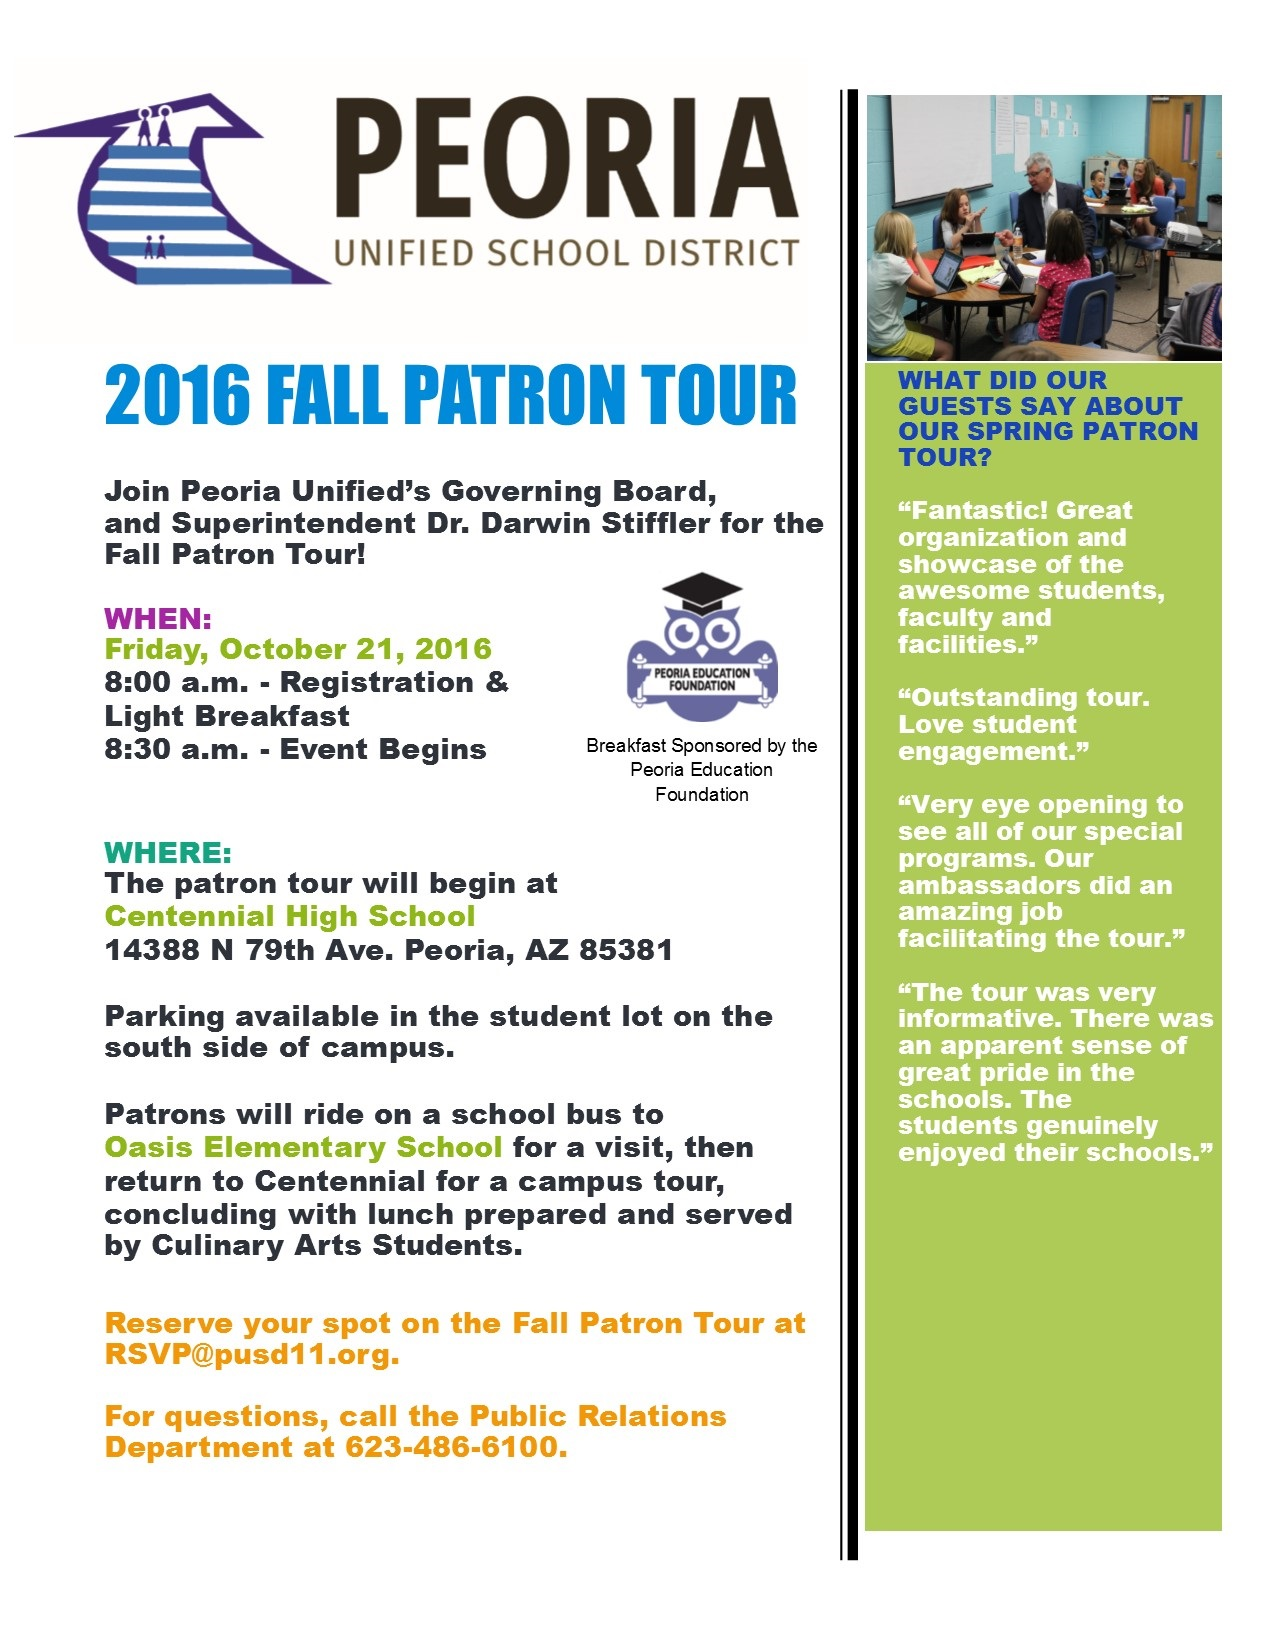 Peoria Unified invites community members to tour its schools PeoriaUnifiedPatronTourPoster